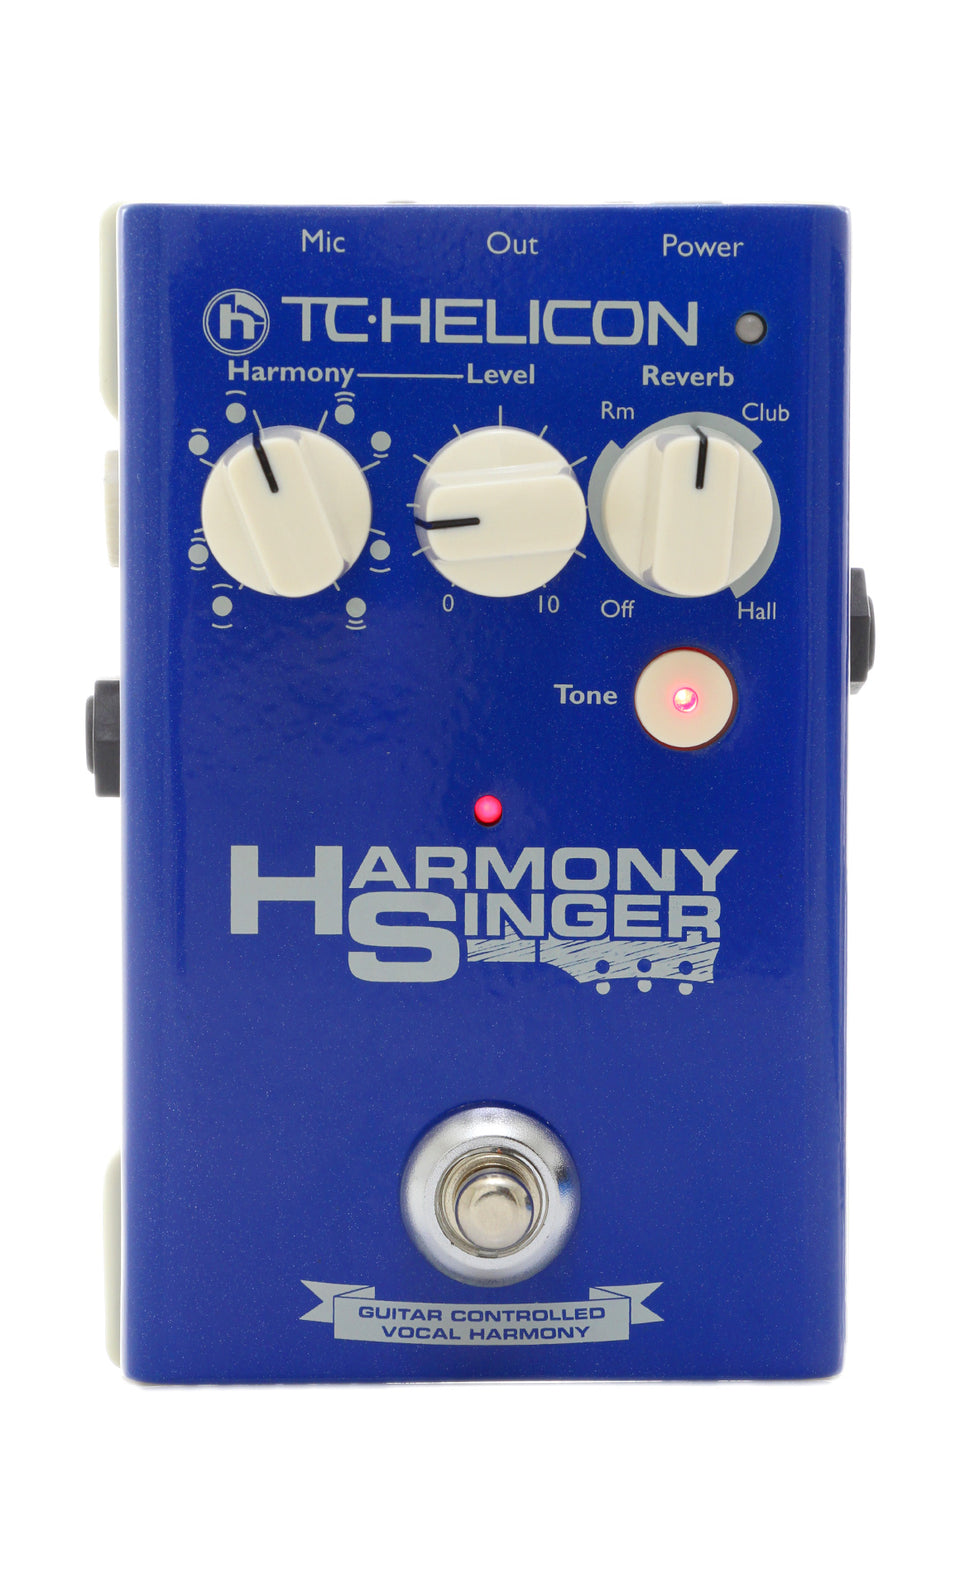 TC HELICON Harmony Singer Vocal Processor Pedal